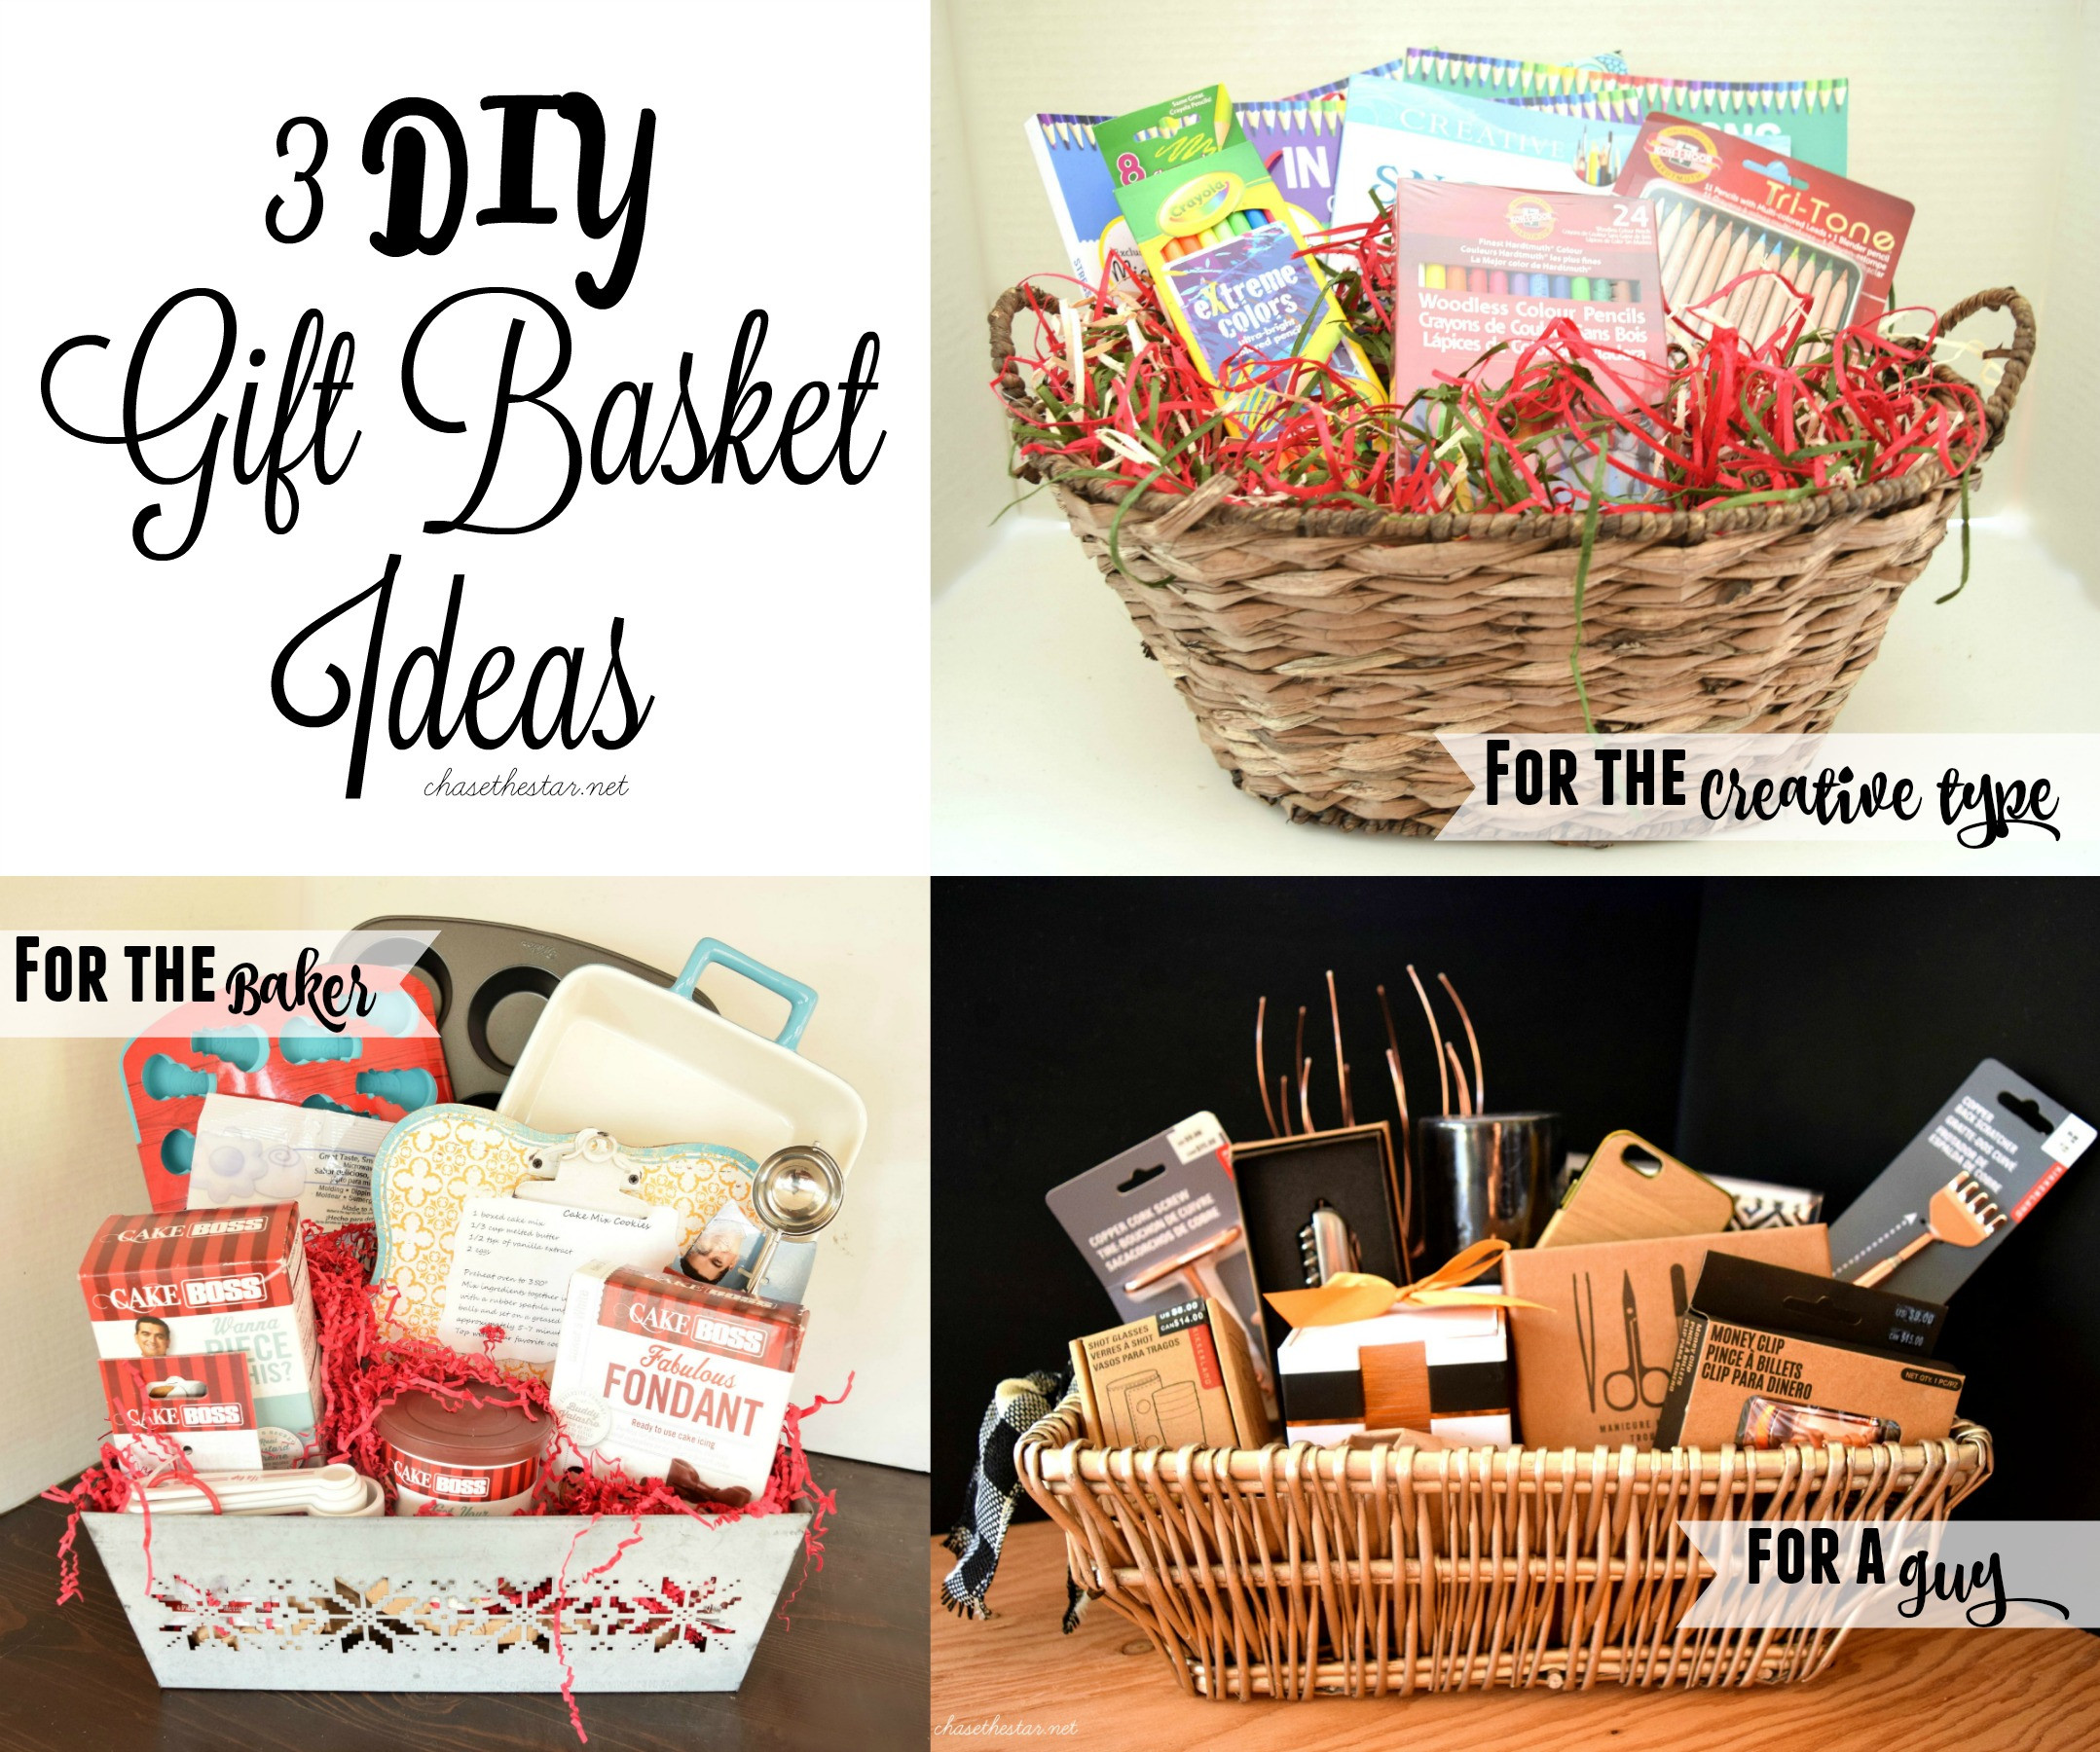 Best ideas about DIY Christmas Gift Baskets Ideas . Save or Pin 3 DIY Gift Basket Ideas Now.